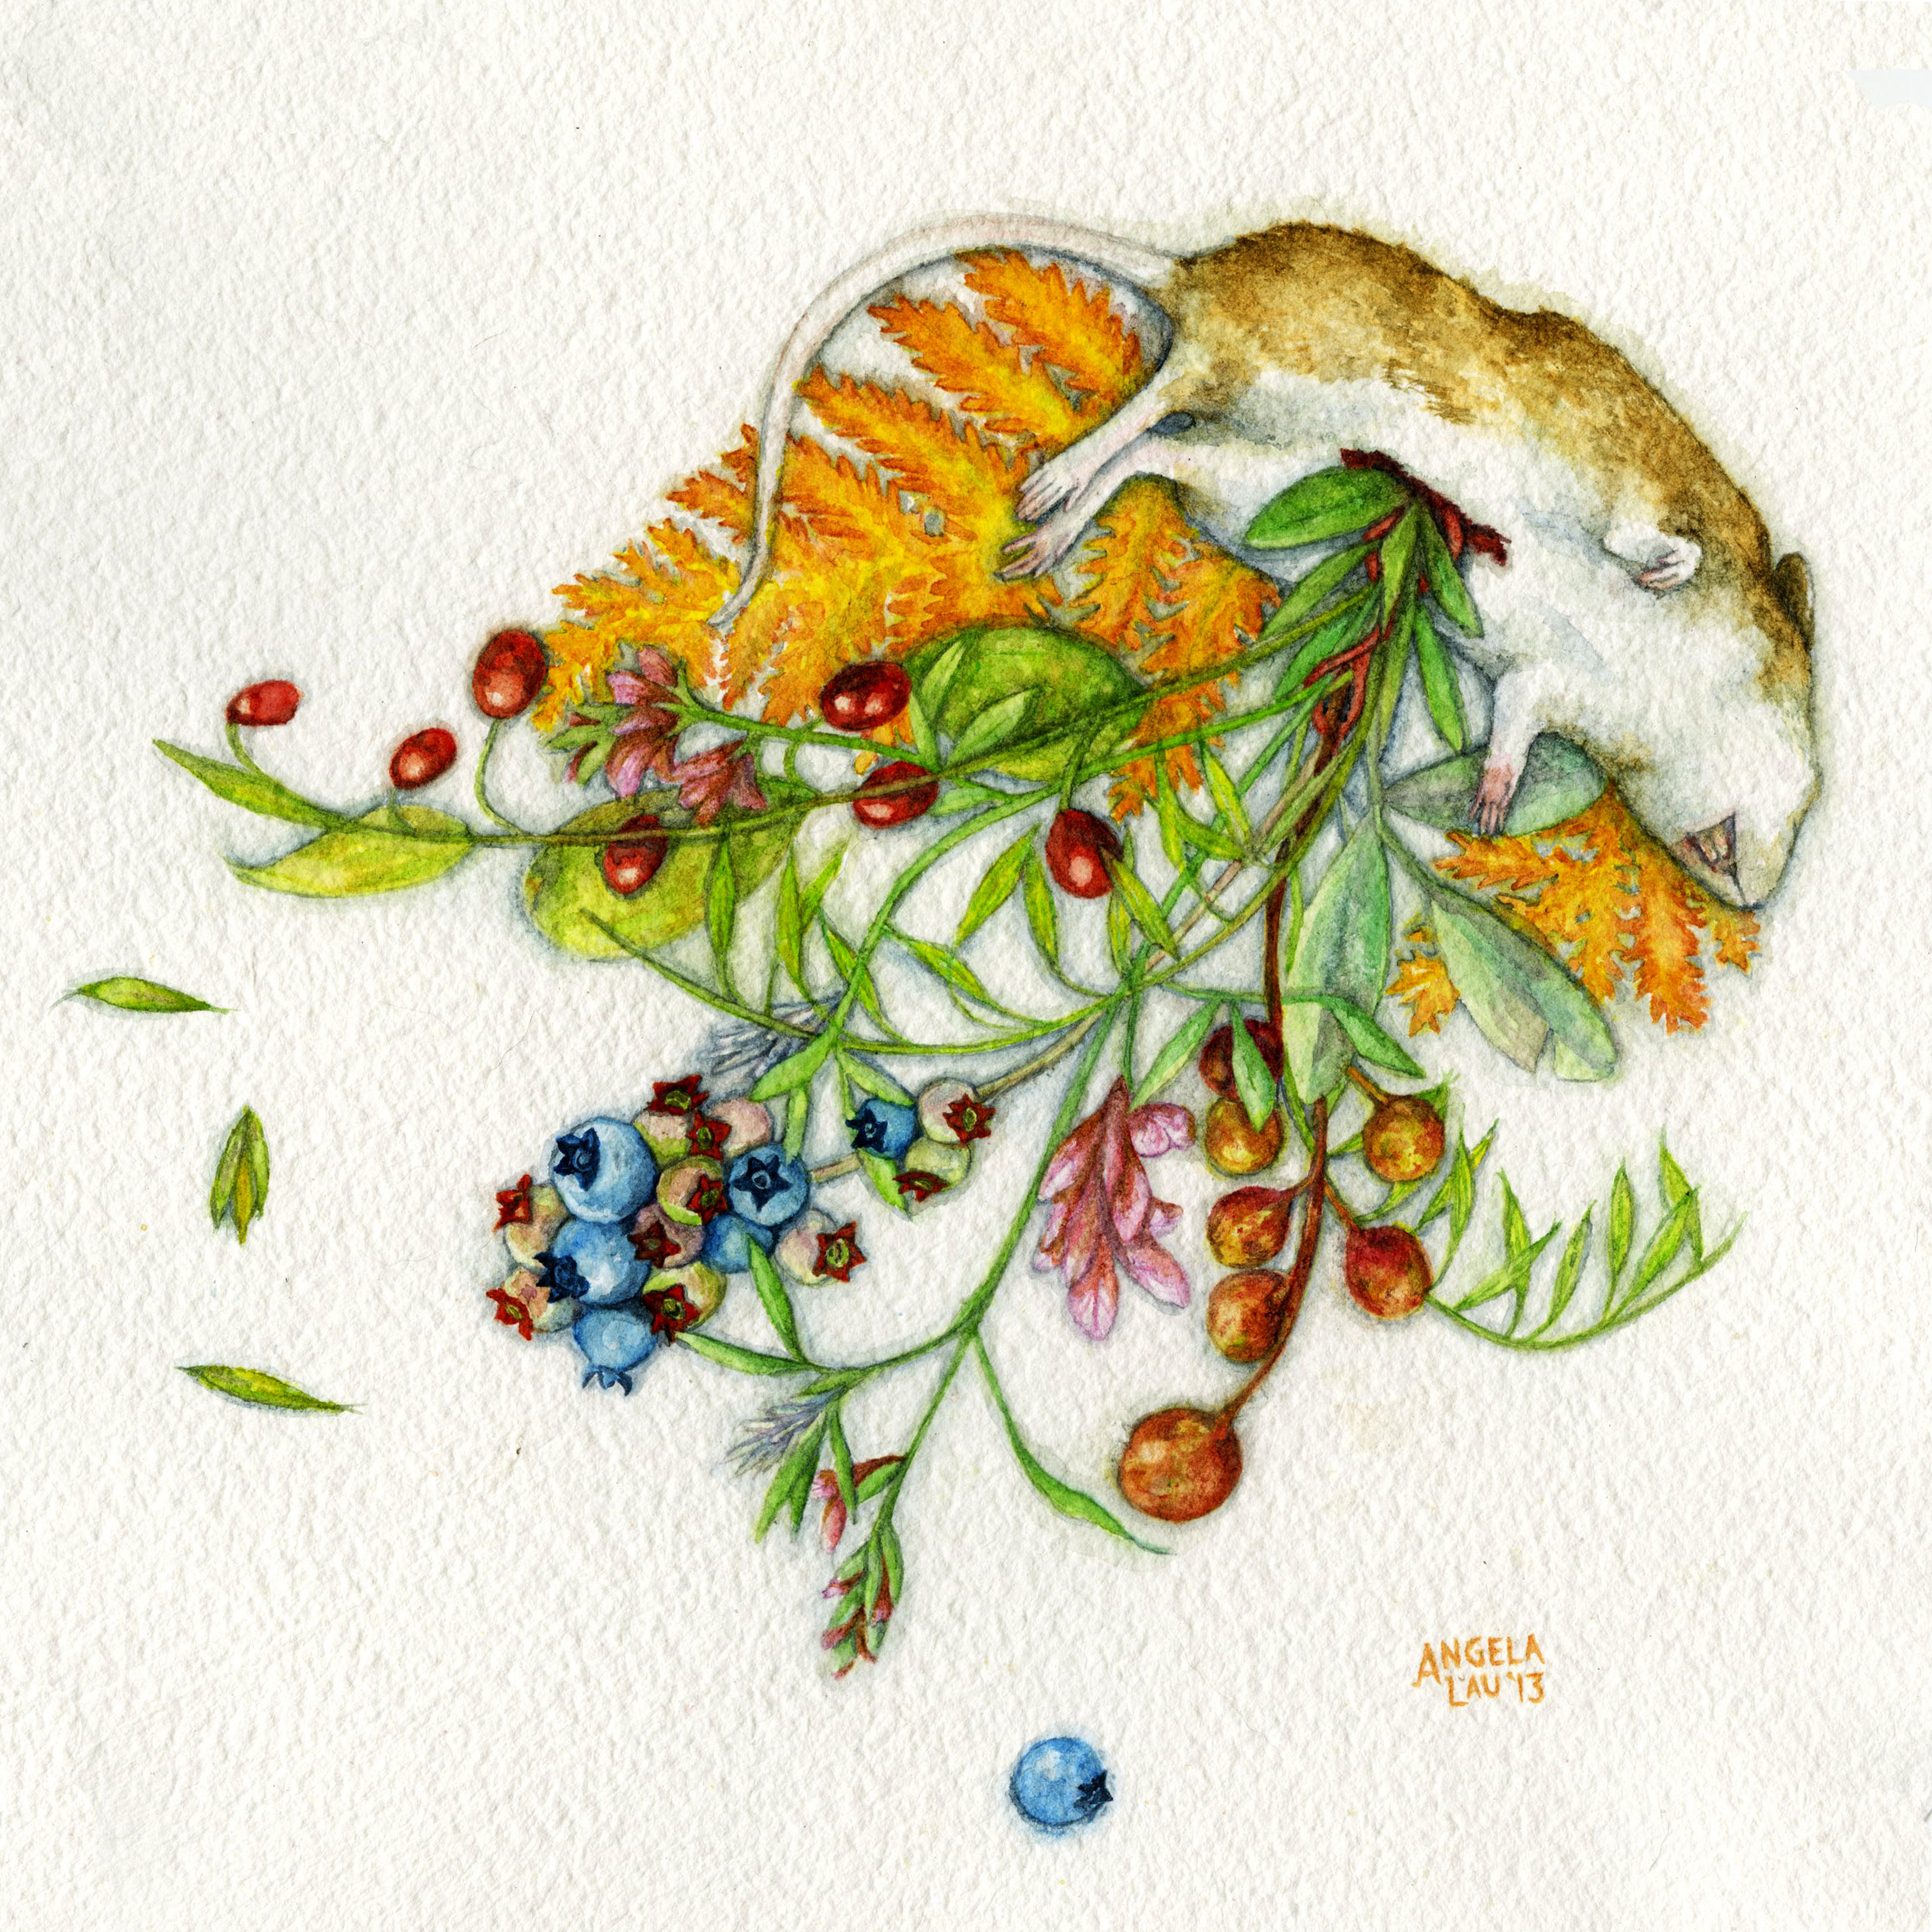 Field Mouse  Watercolor on paper 2013  Diet of field mice.